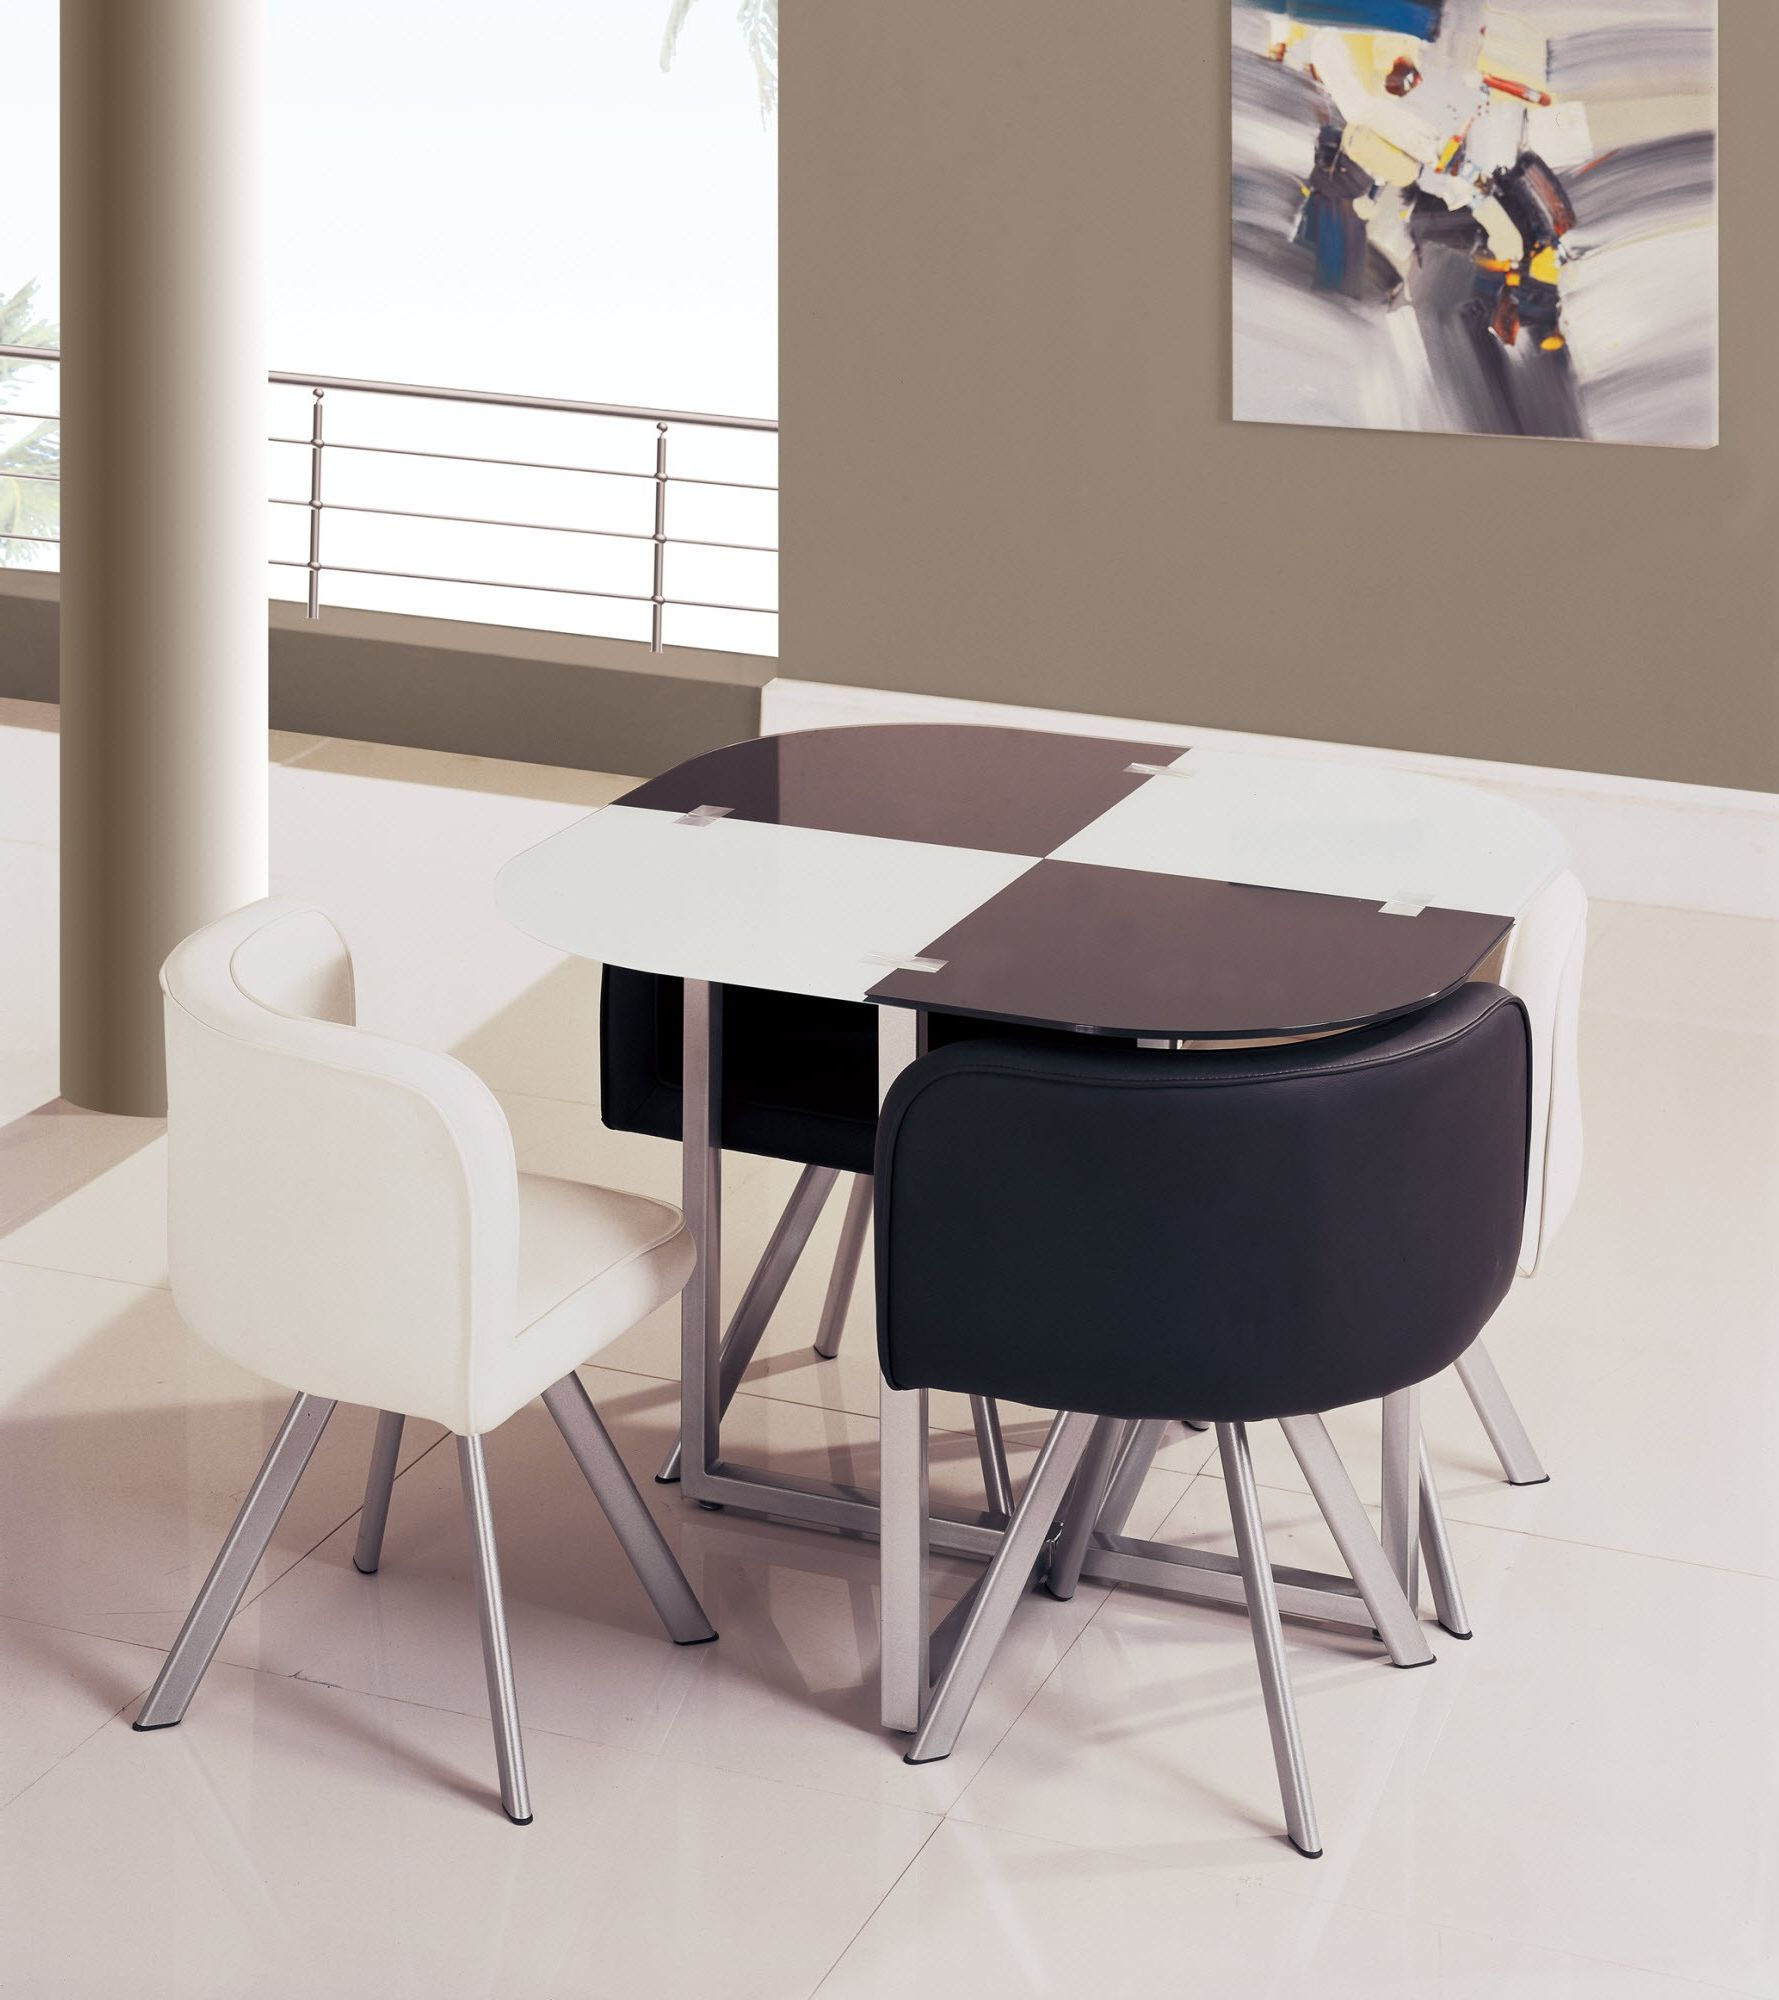 Good space saver dining set homesfeed for Good dining tables for small spaces